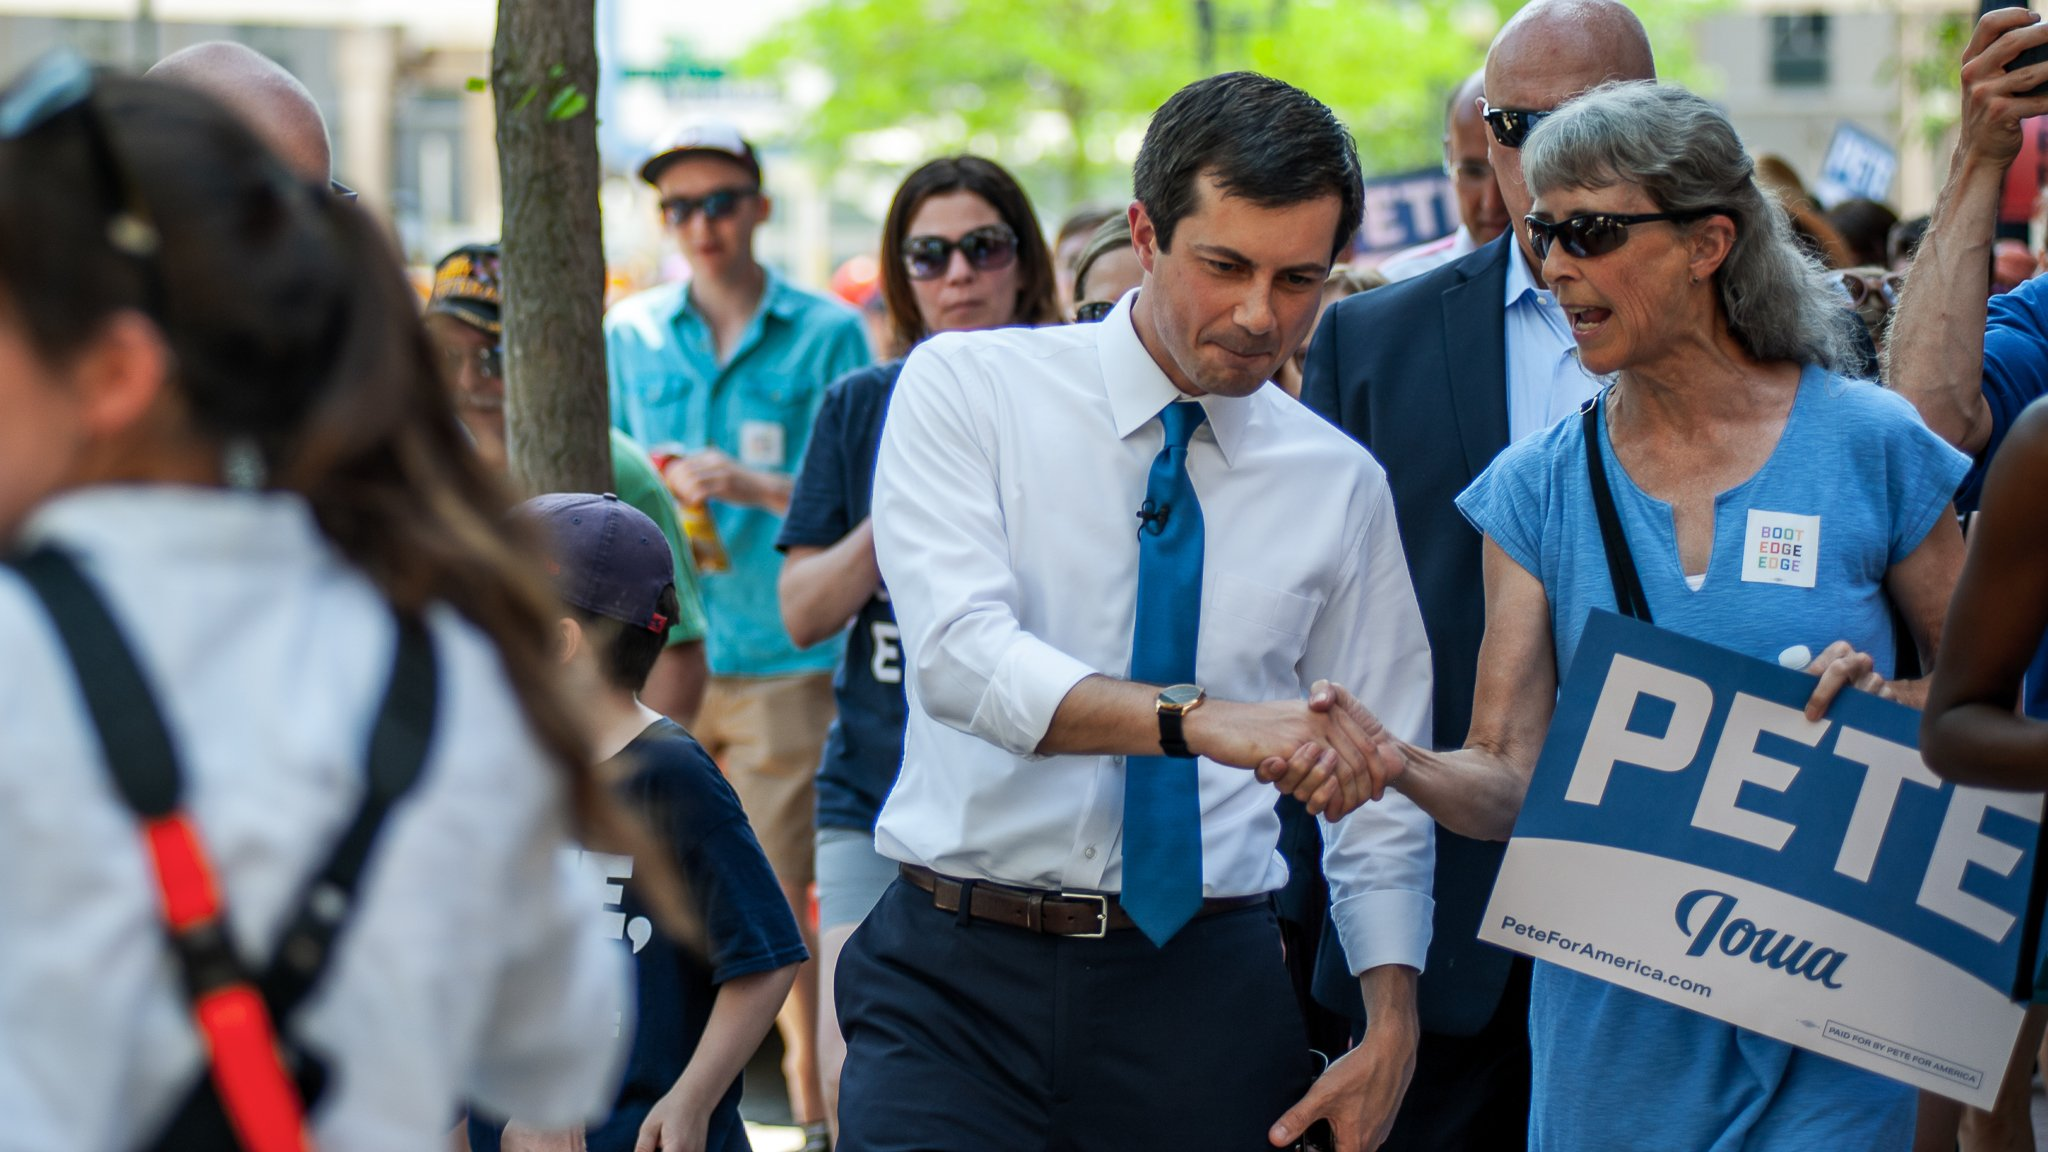 South Bend, Indiana Mayor Pete Buttigieg shaking hands at a campaign event in Cedar Rapids, Iowa